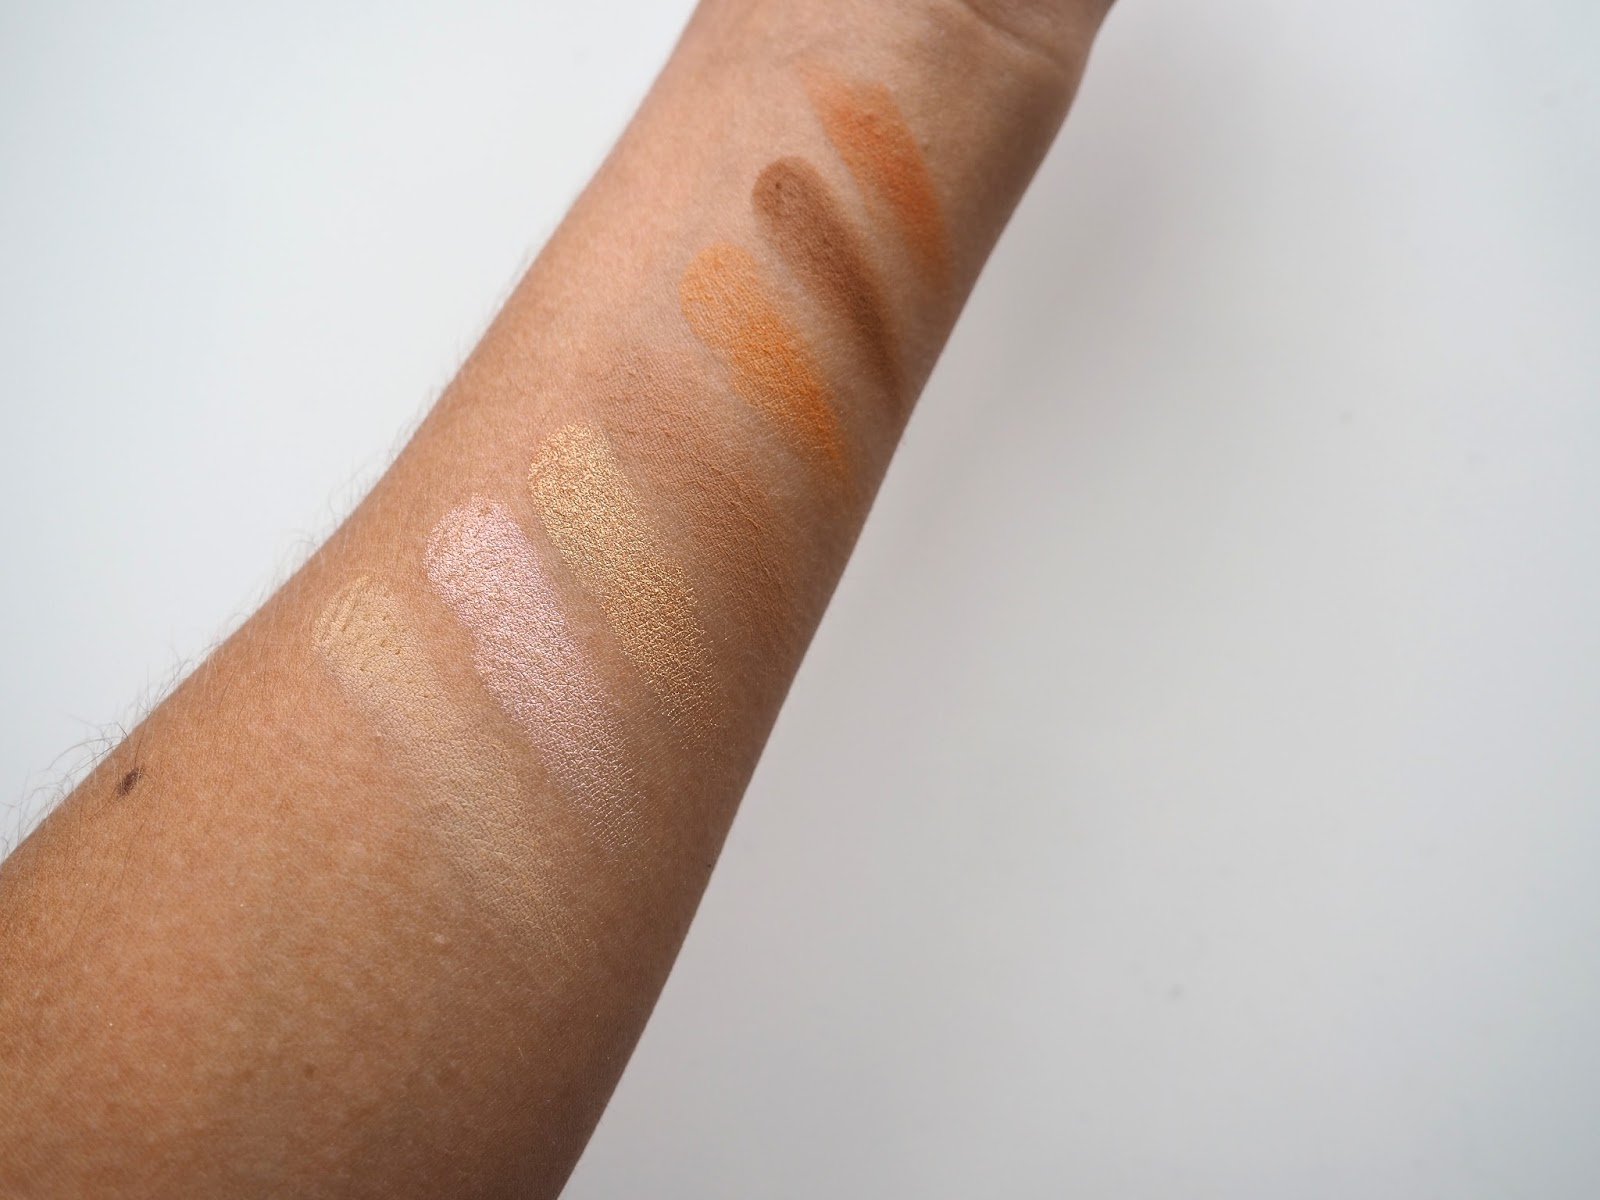 Morphe 35O Eyeshadow Palette Swatches It's Cultured Blog Post